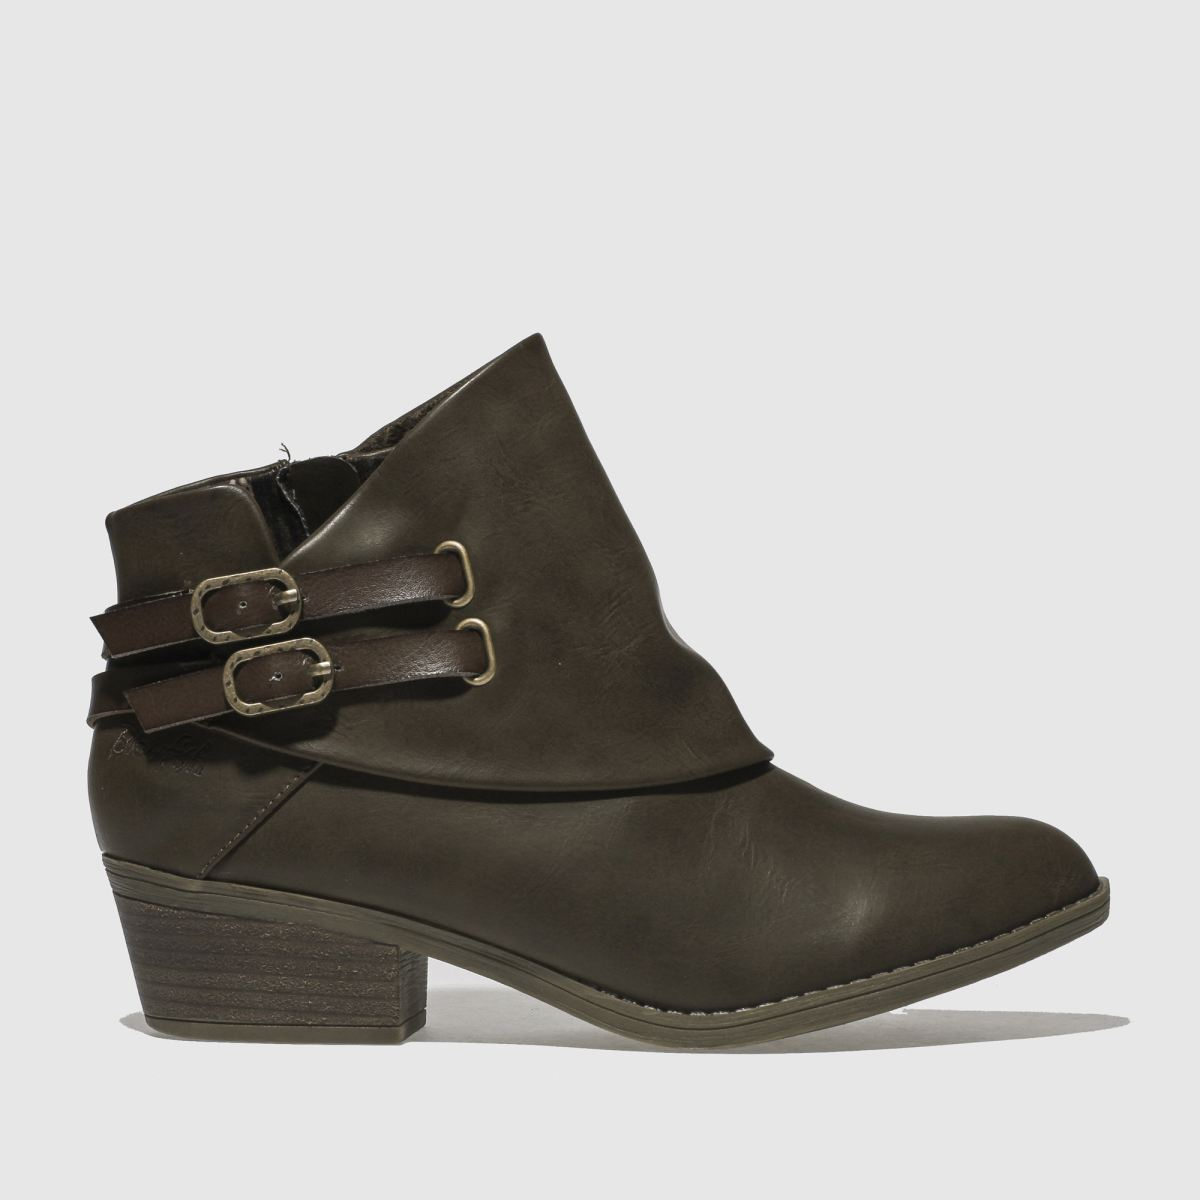 Blowfish Brown Sistee Boots